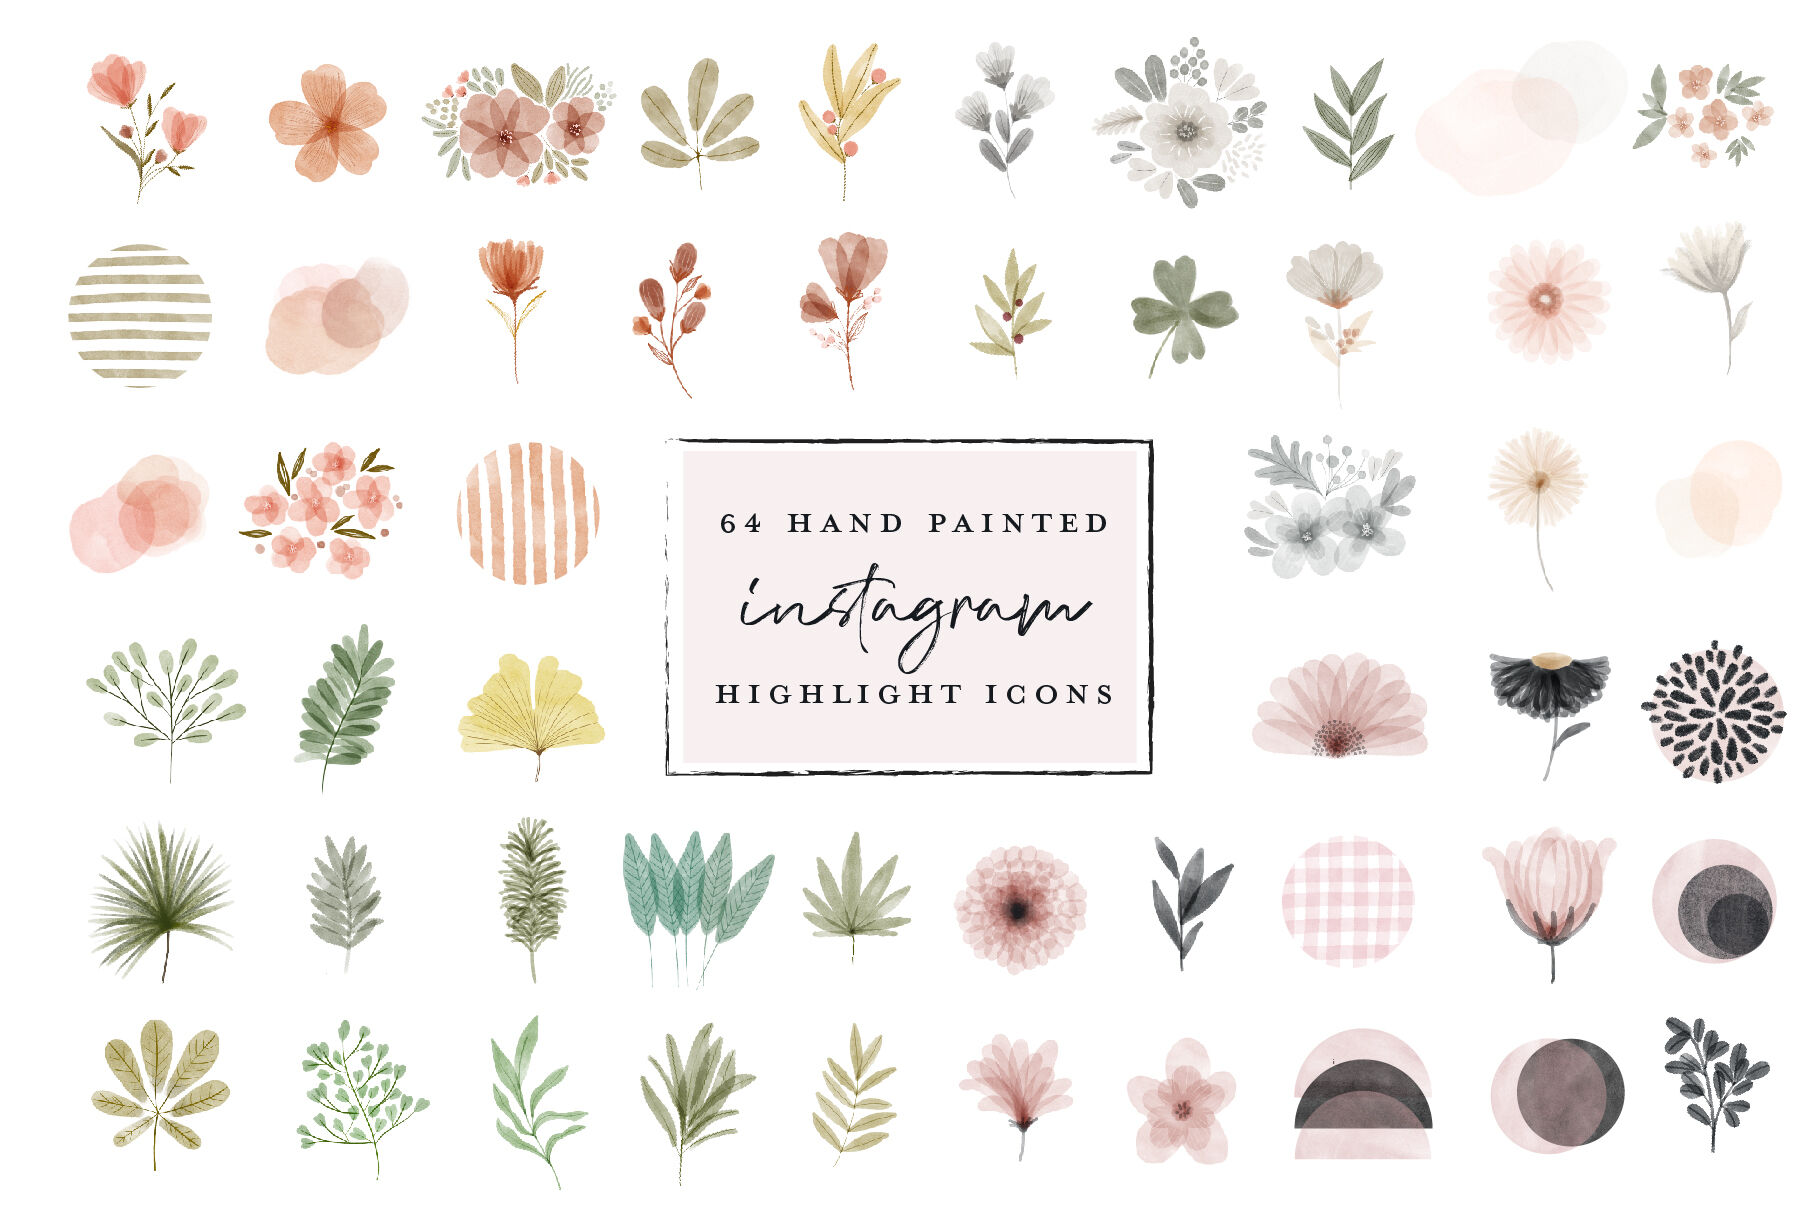 64 Instagram Highlight Icon Bundle Watercolor Hand Painted By